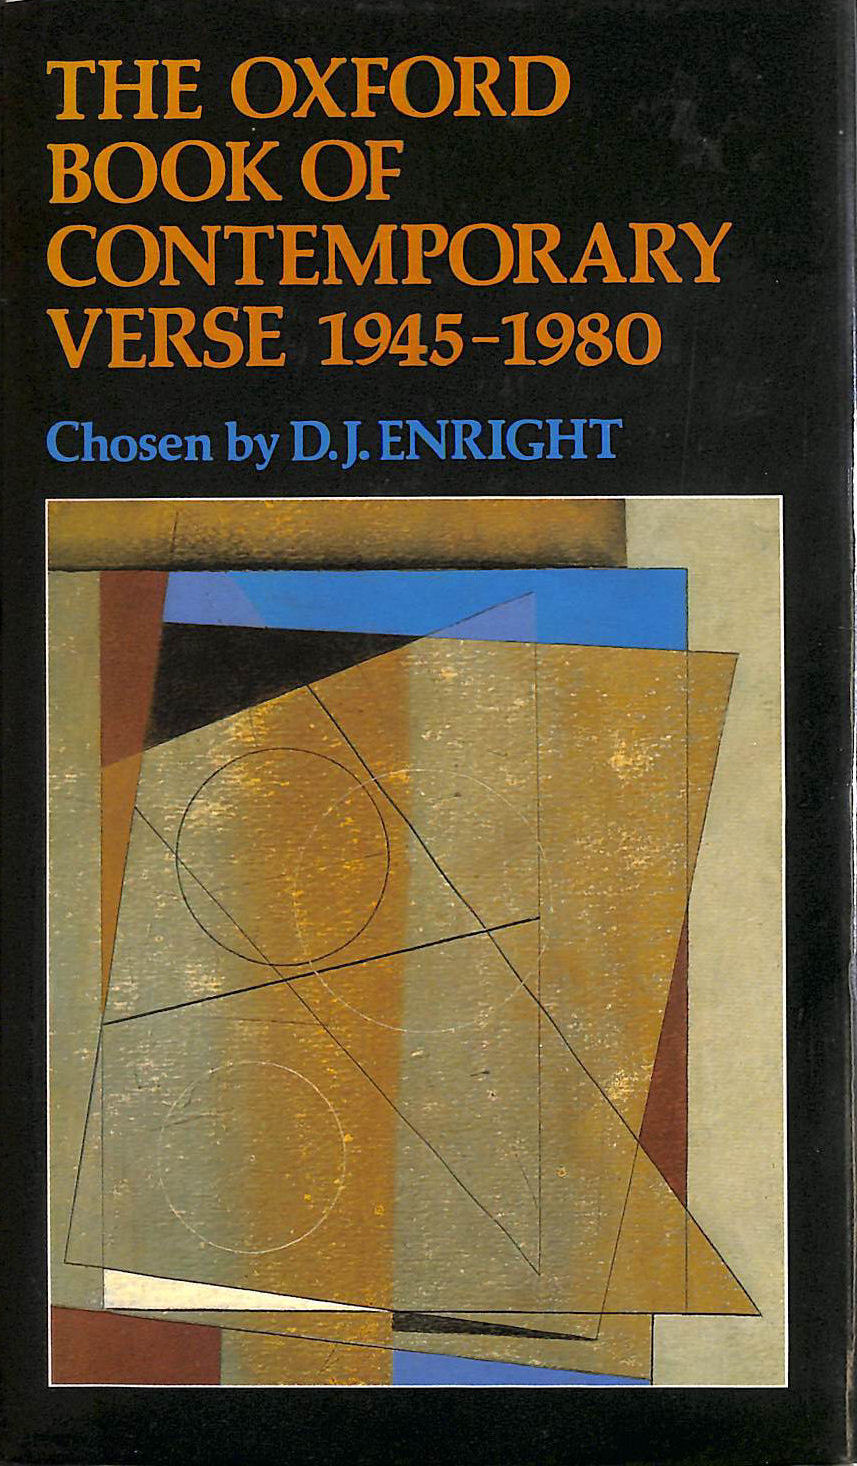 The Oxford Book of Contemporary Verse 1945-1980, D.J. Enright [Editor]; D.J. Enright [Introduction];